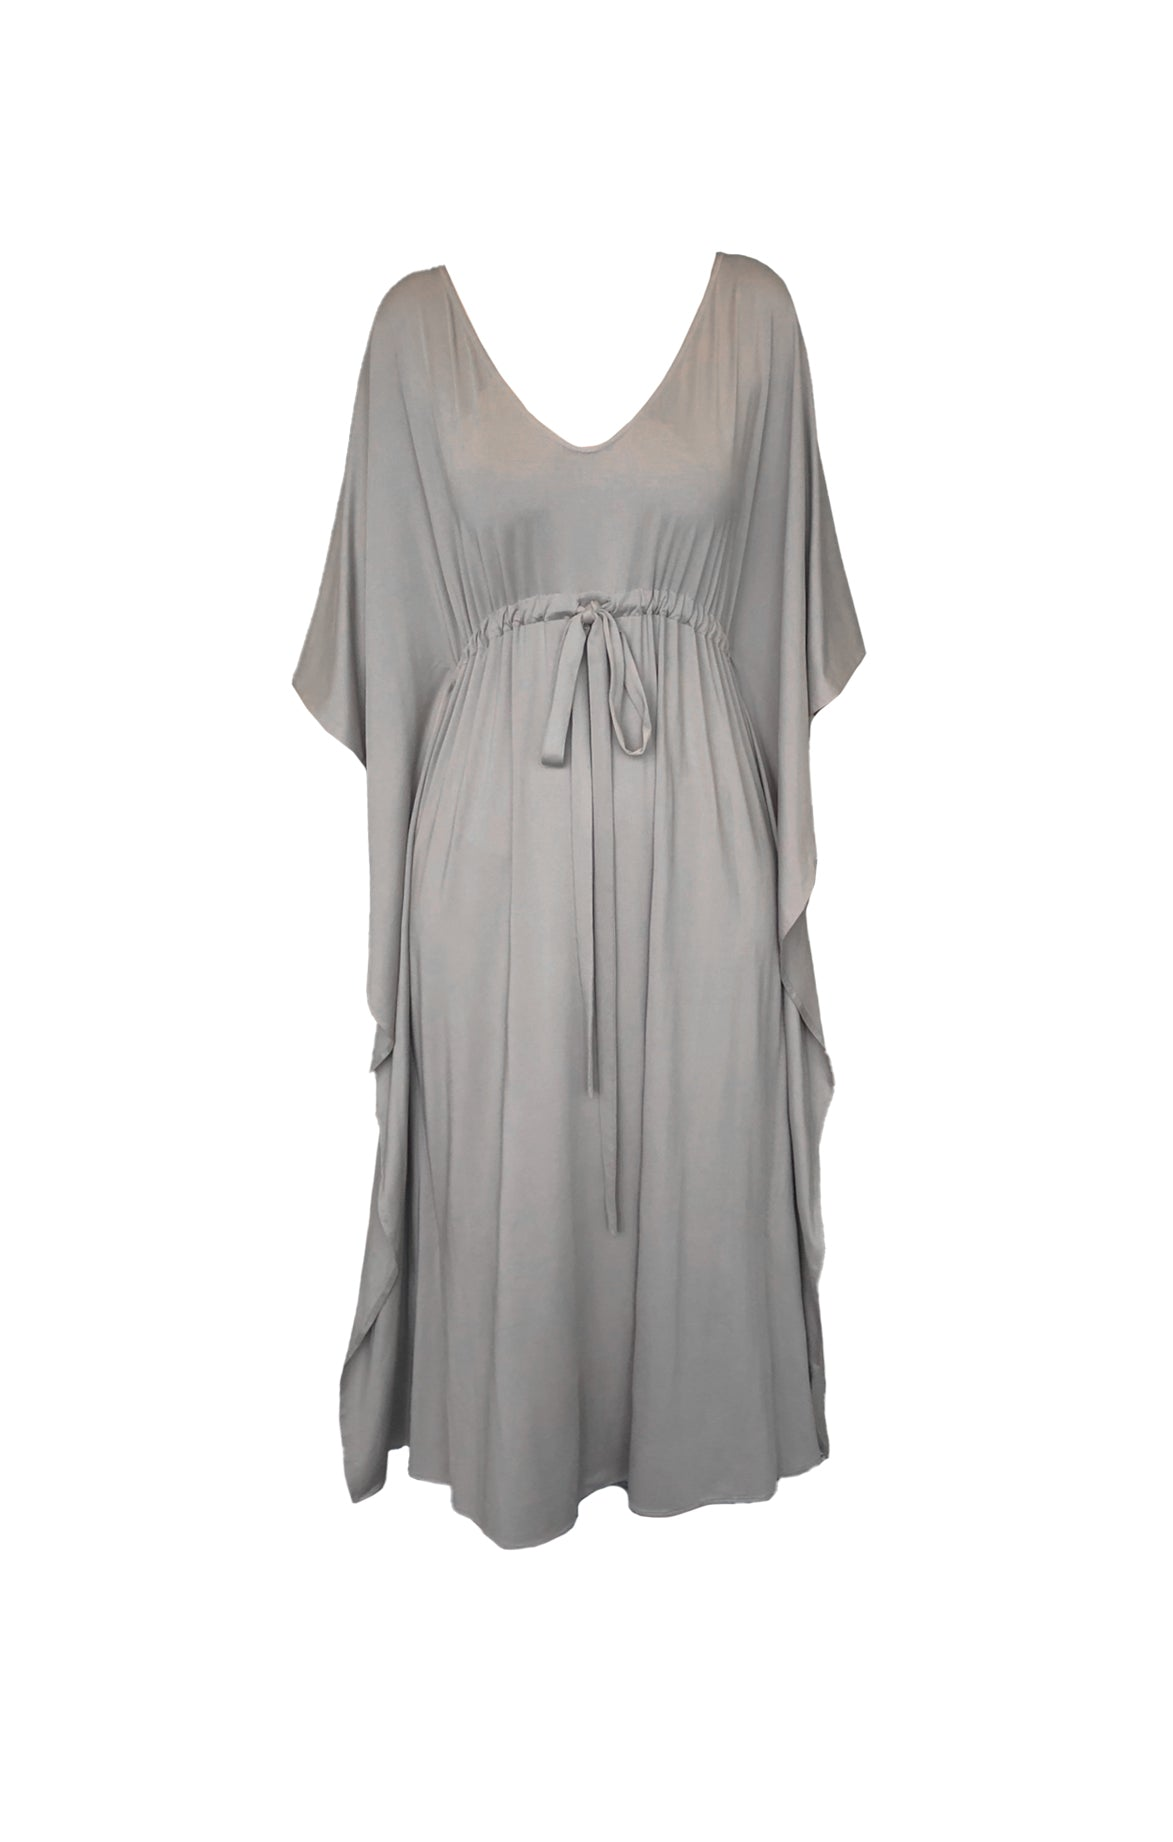 Sayulita Kaftan in Coba Dress